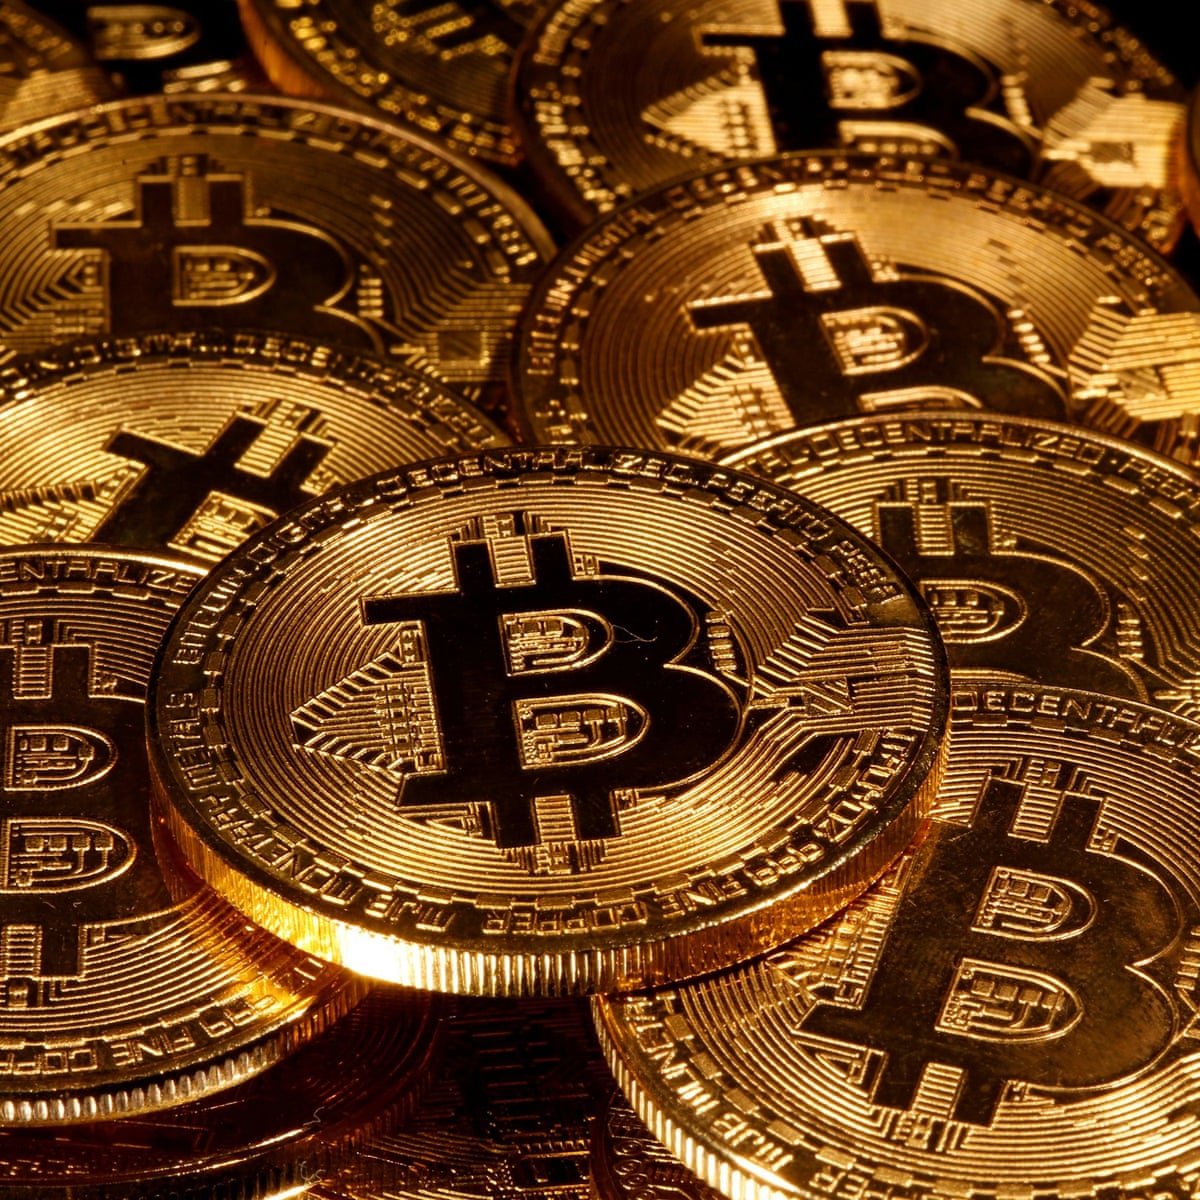 Bitcoin Volatility Drops To Lowest Level Since Bull Run Began